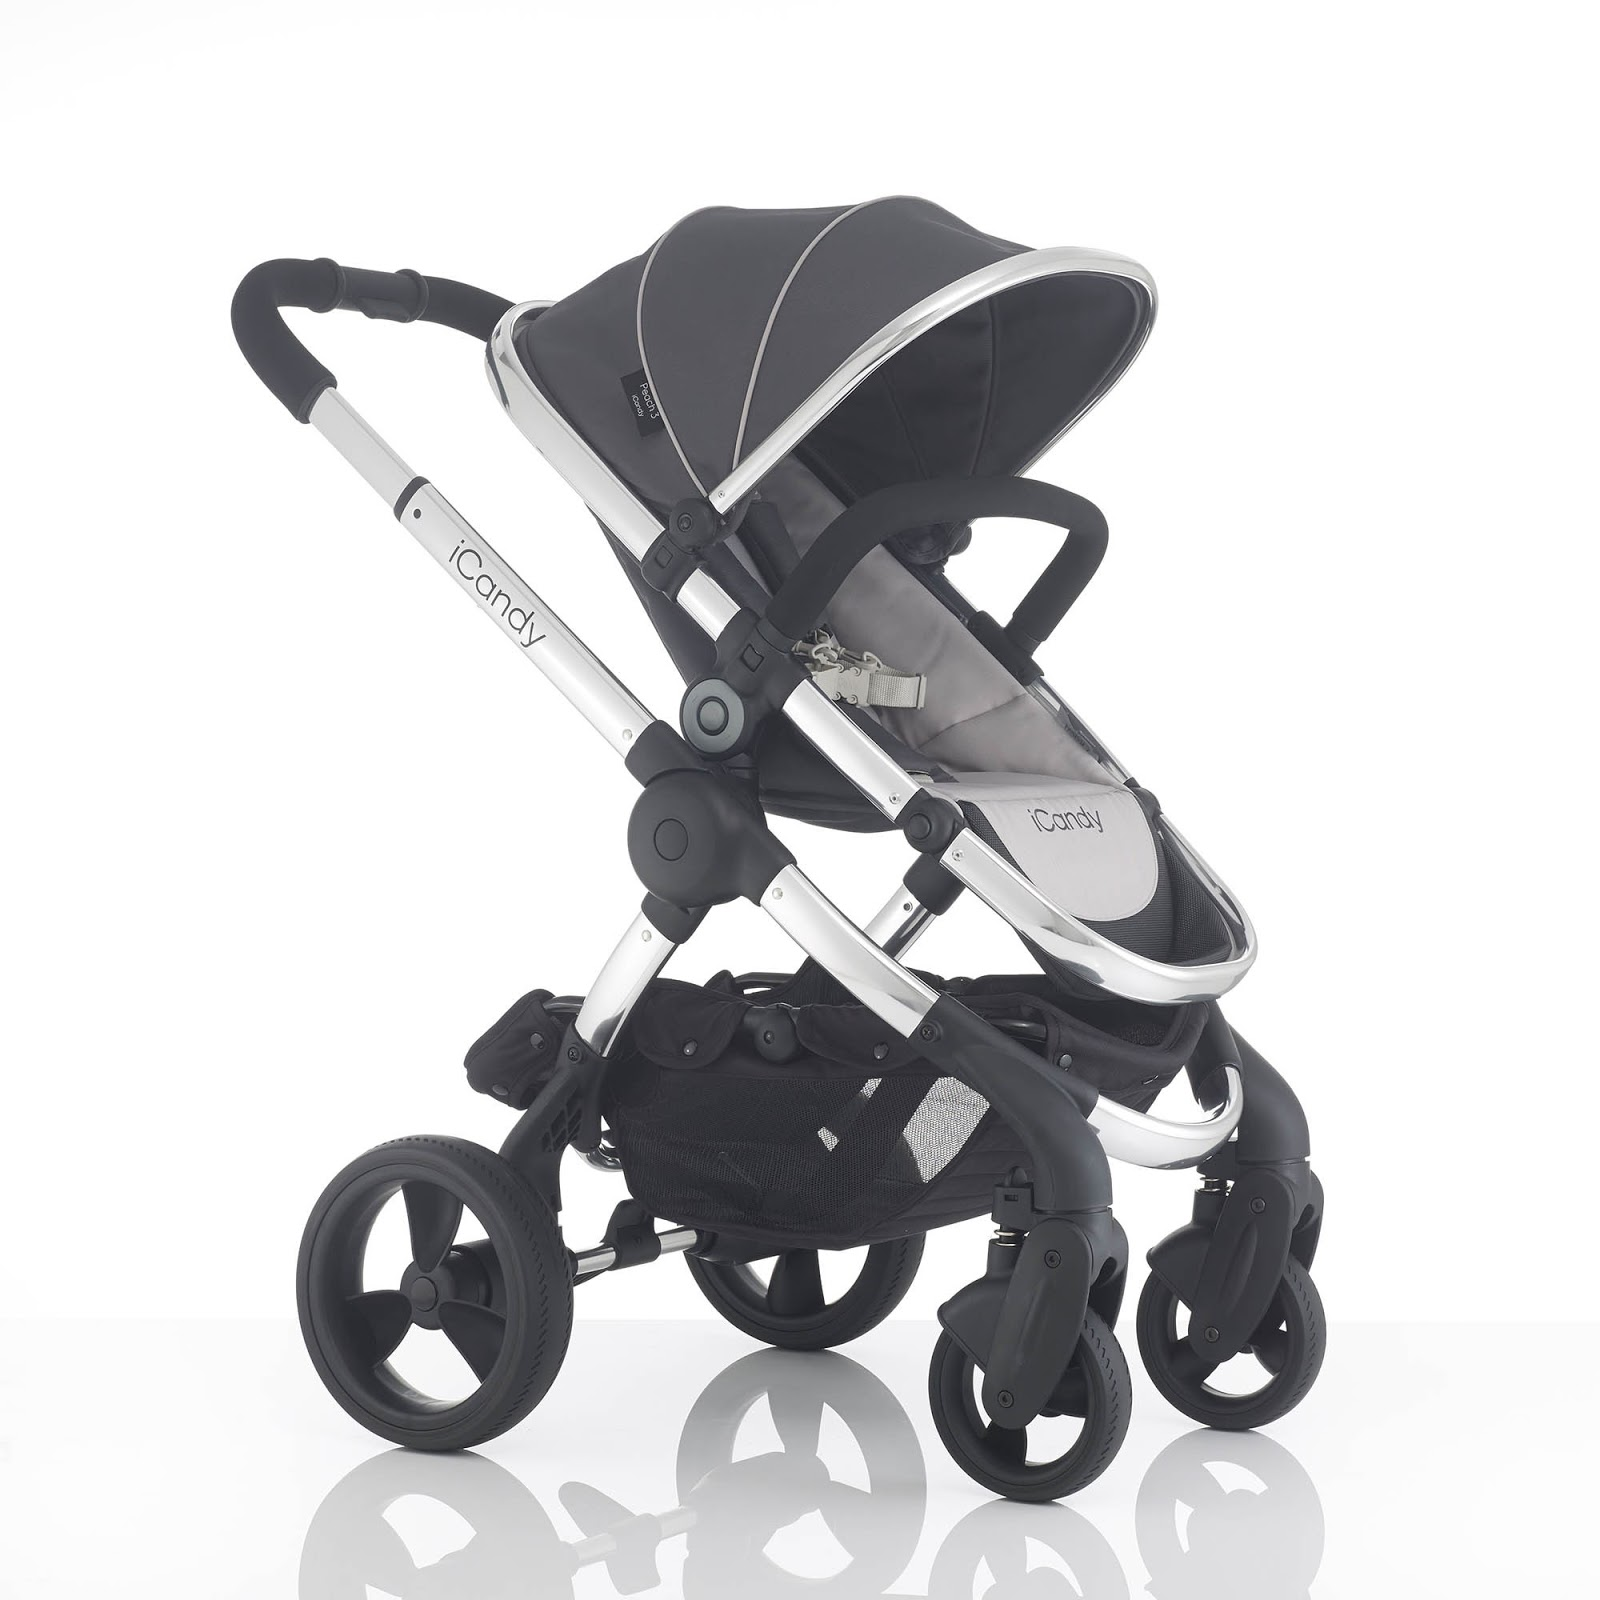 top_baby_products, icandy_peach_review, essential_baby_stuff, icandy_peach3